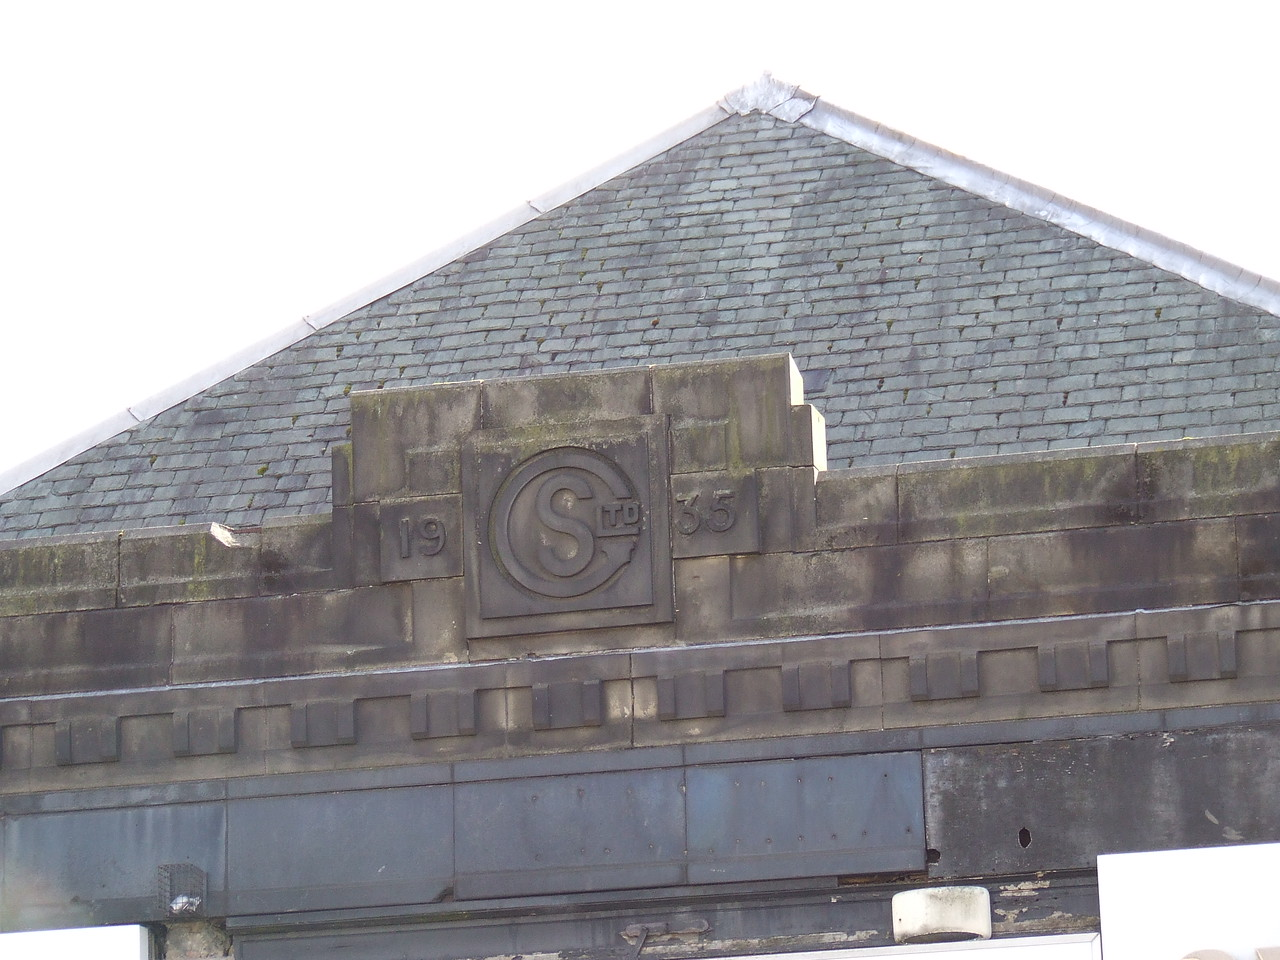 The building dates from 1935, and the familiar sight on all Galbraith's was the stone GS and the year it was built, in this case 1935